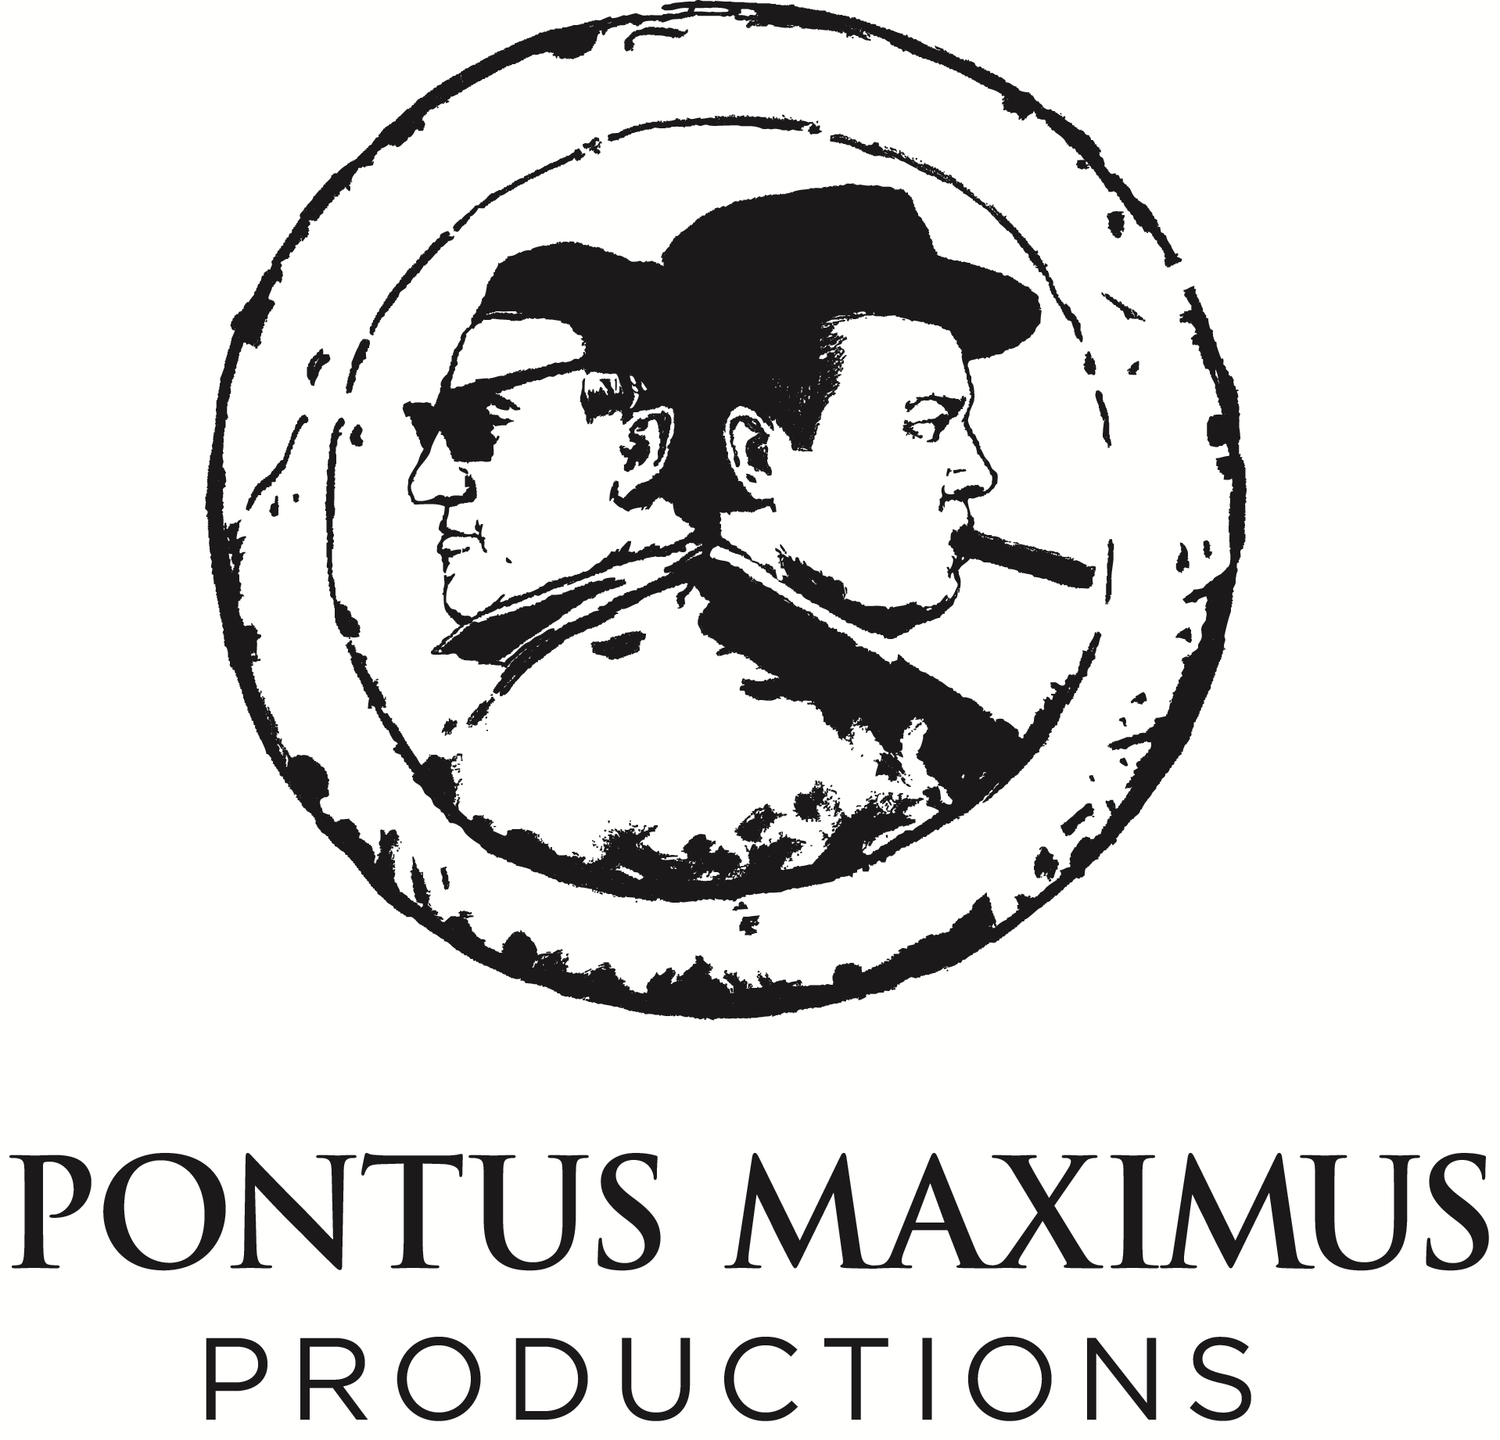 Pontus Maximus Productions